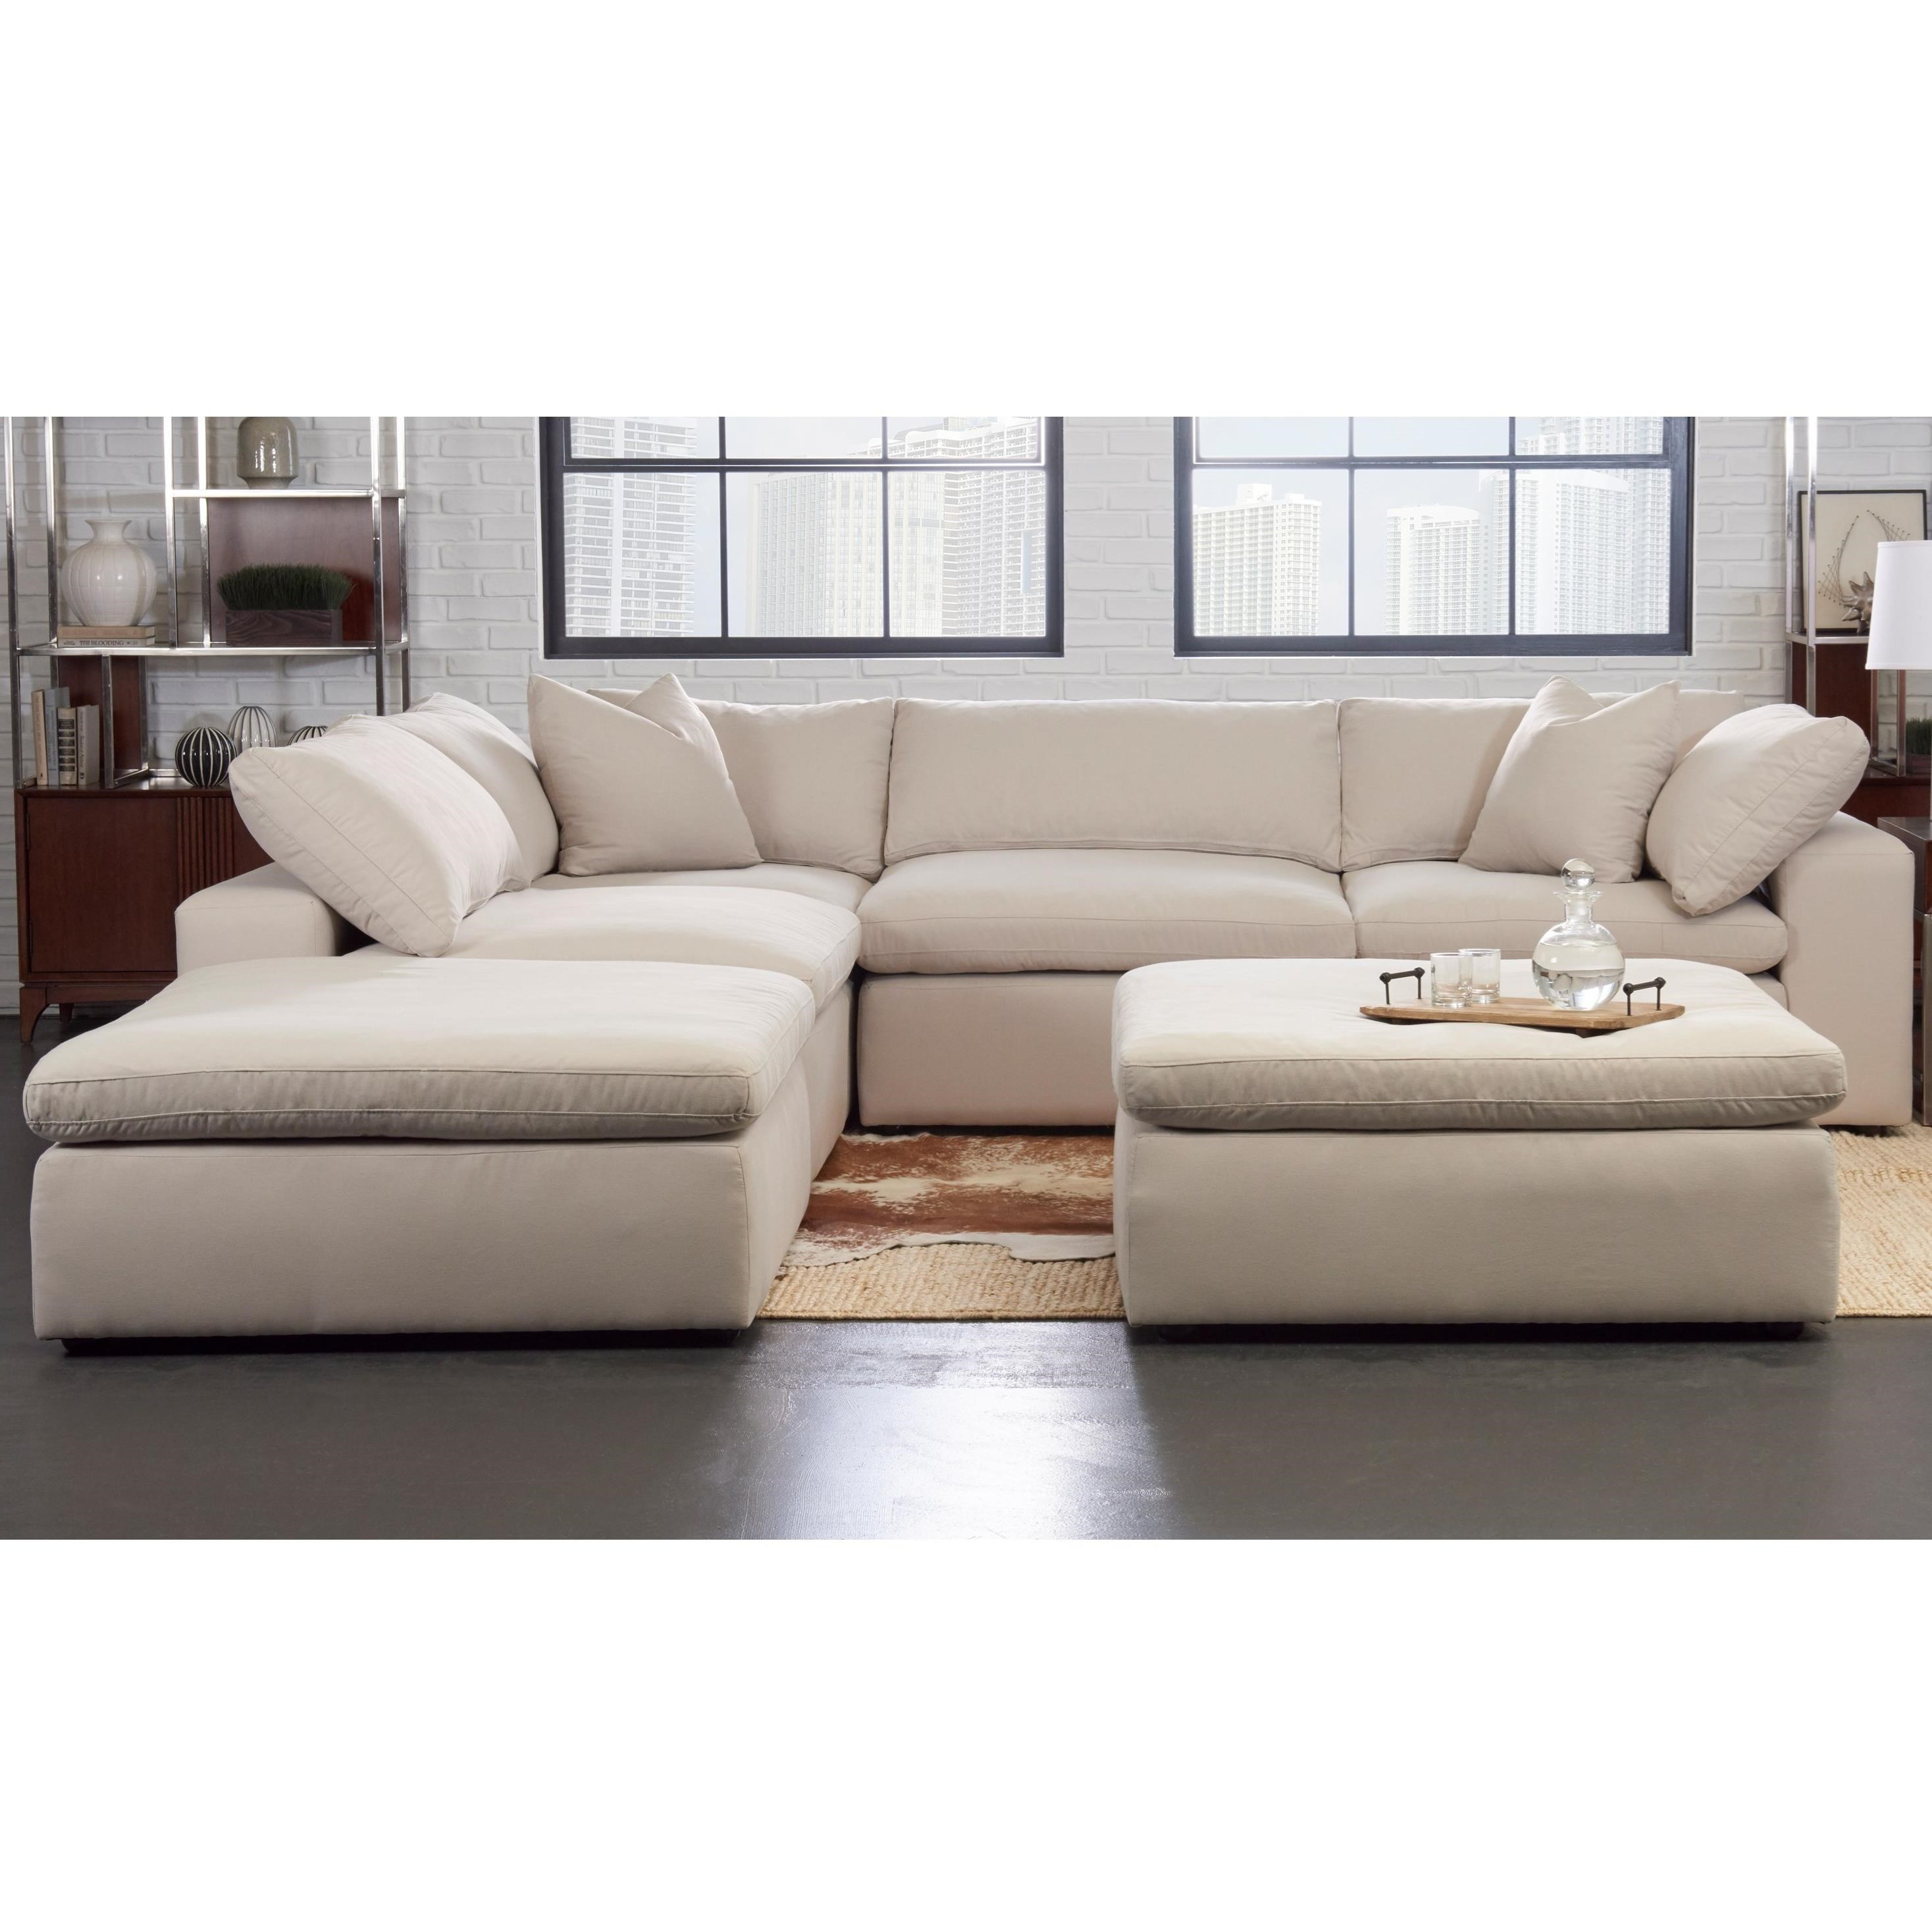 Otto Sale Sofa Elliston Place Monterey Contemporary 5 Pc Modular Sectional Sofa